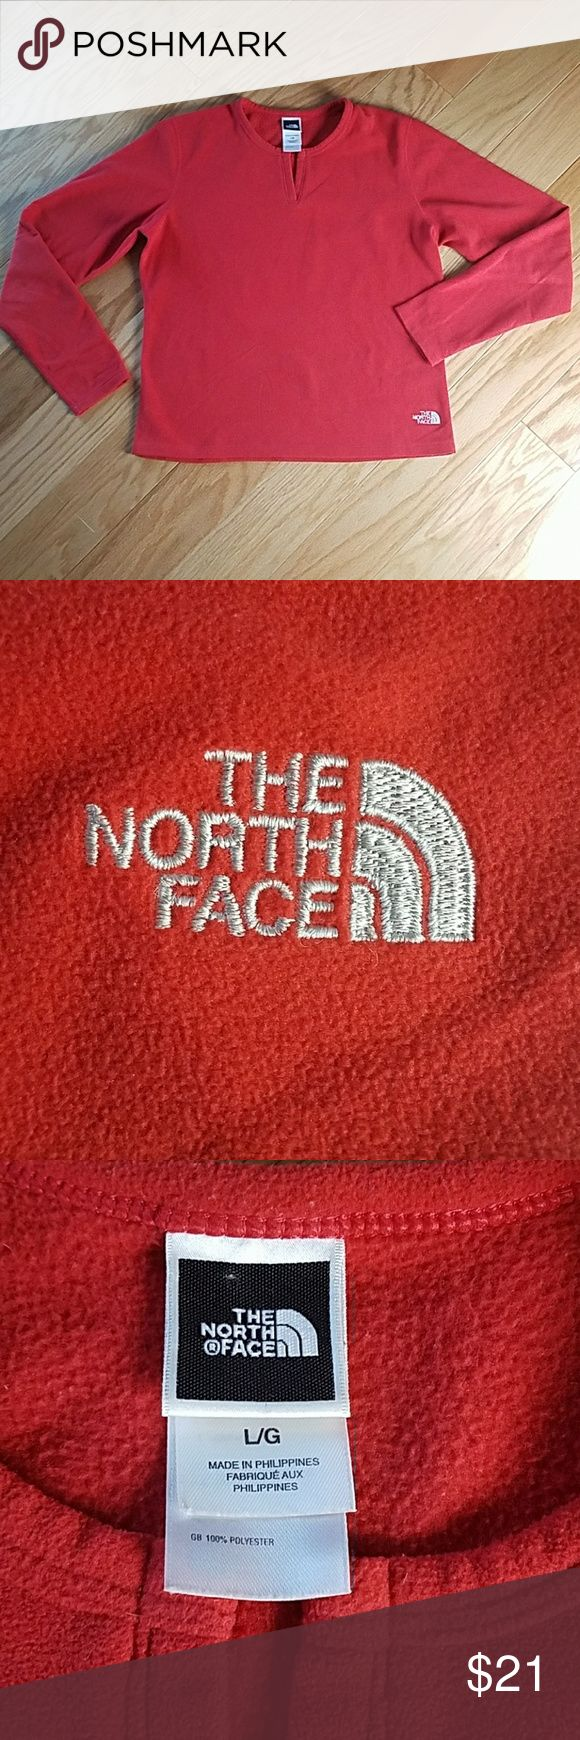 The North Face Ladies Fleece Size Large  Excellent like new condition  21'' from armpit to armpit  23'' in back from center of neck opening to bottom  20'' in front from center neck opening to bottom  Bright red orange color The North Face Tops Sweatshirts & Hoodies